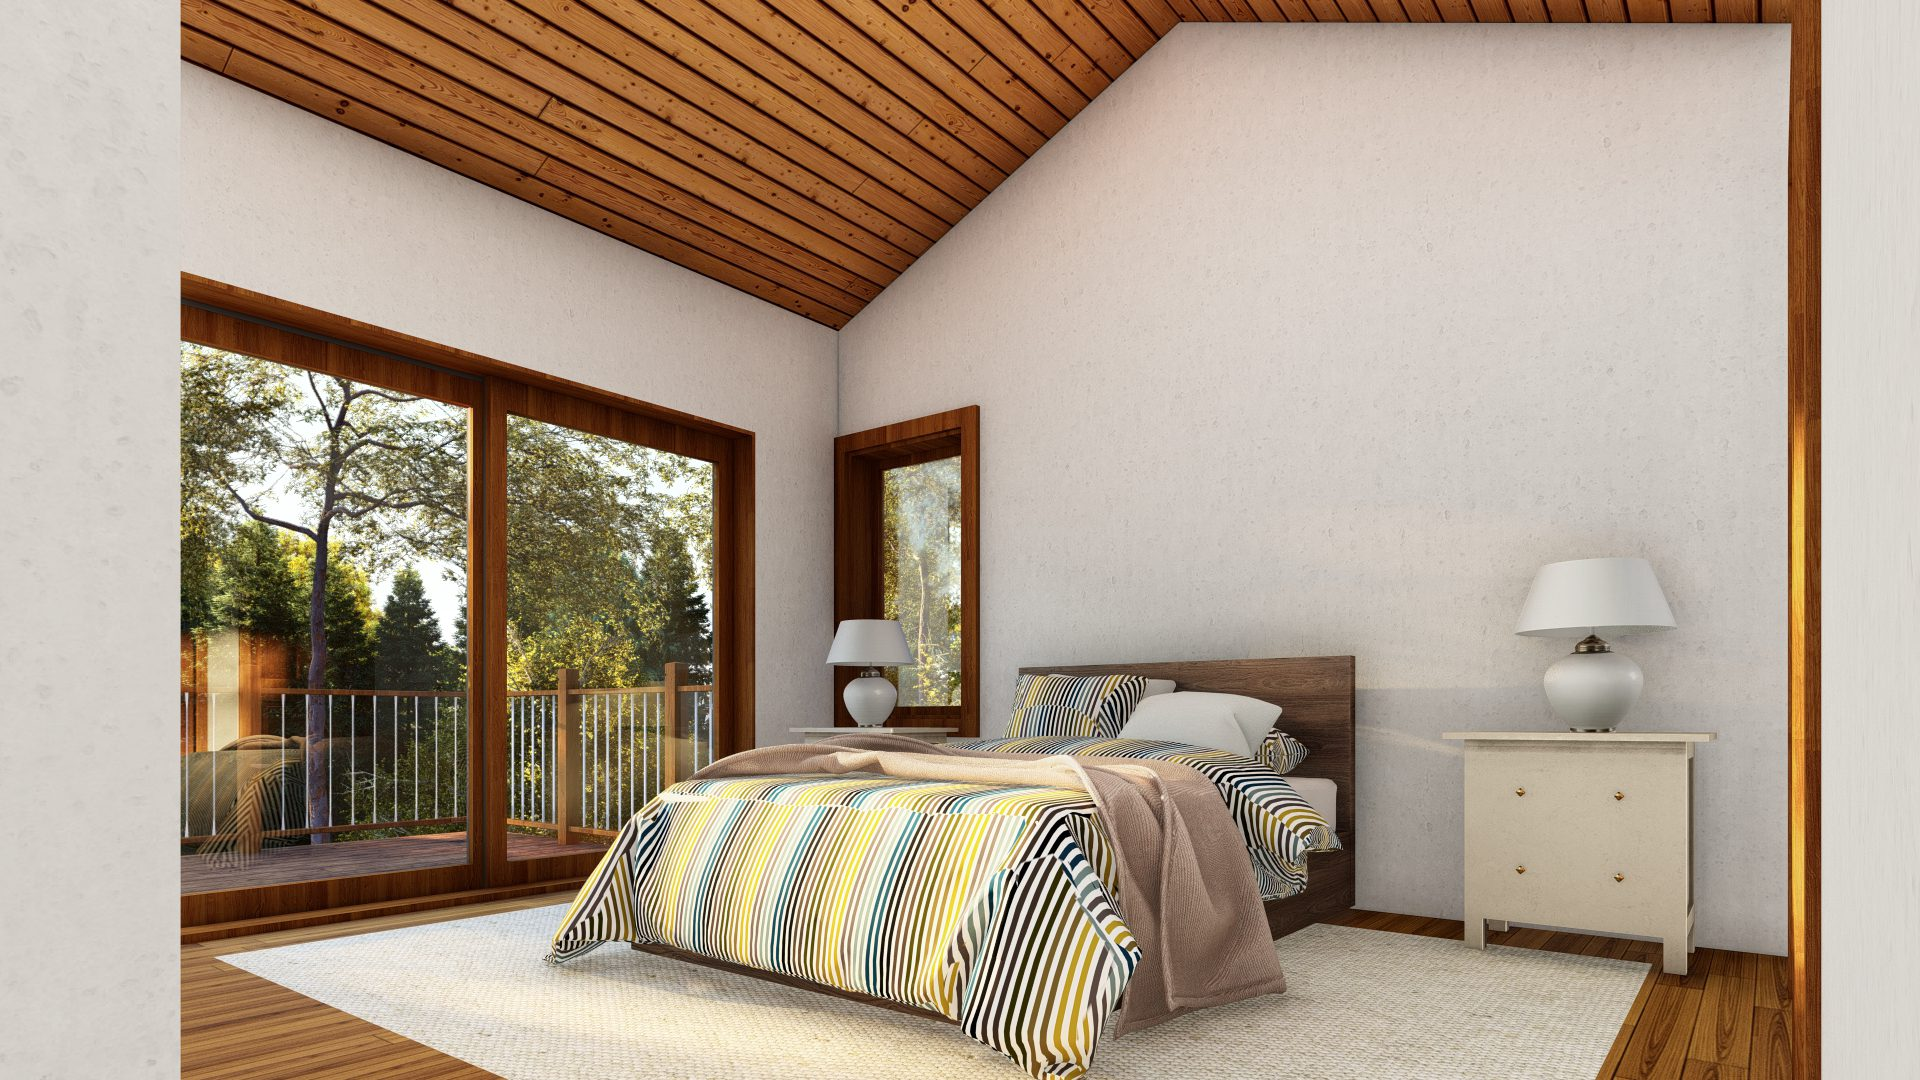 Normerica Timber Frames, House Plans, The Tobermory 3949, Interior, Bedroom 1